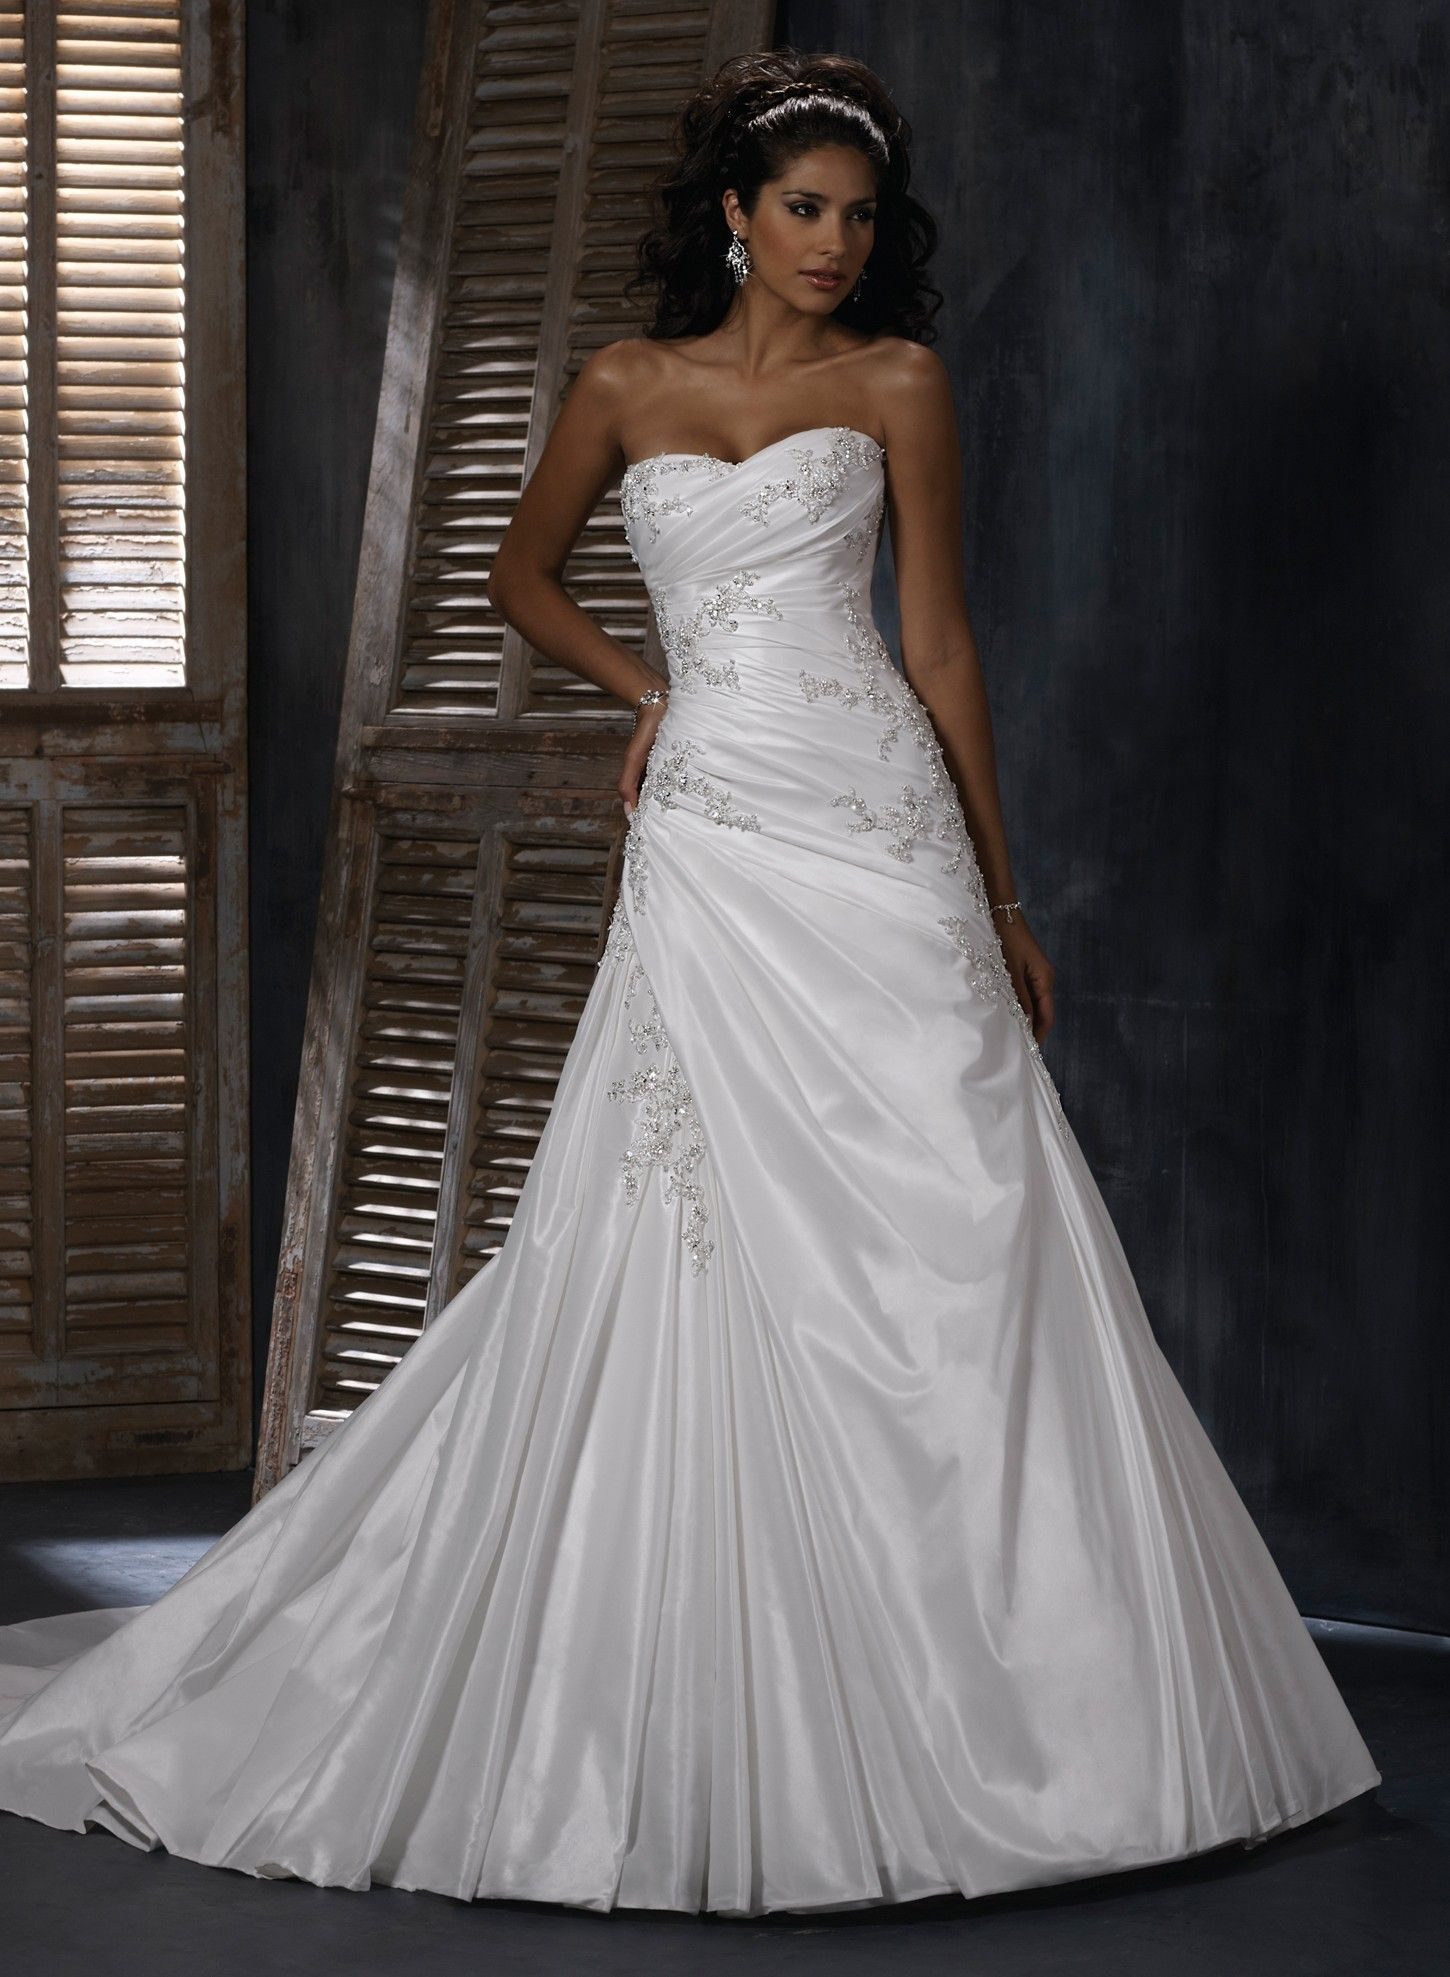 bordeaux taffeta soft sweetheart neckline aline wedding